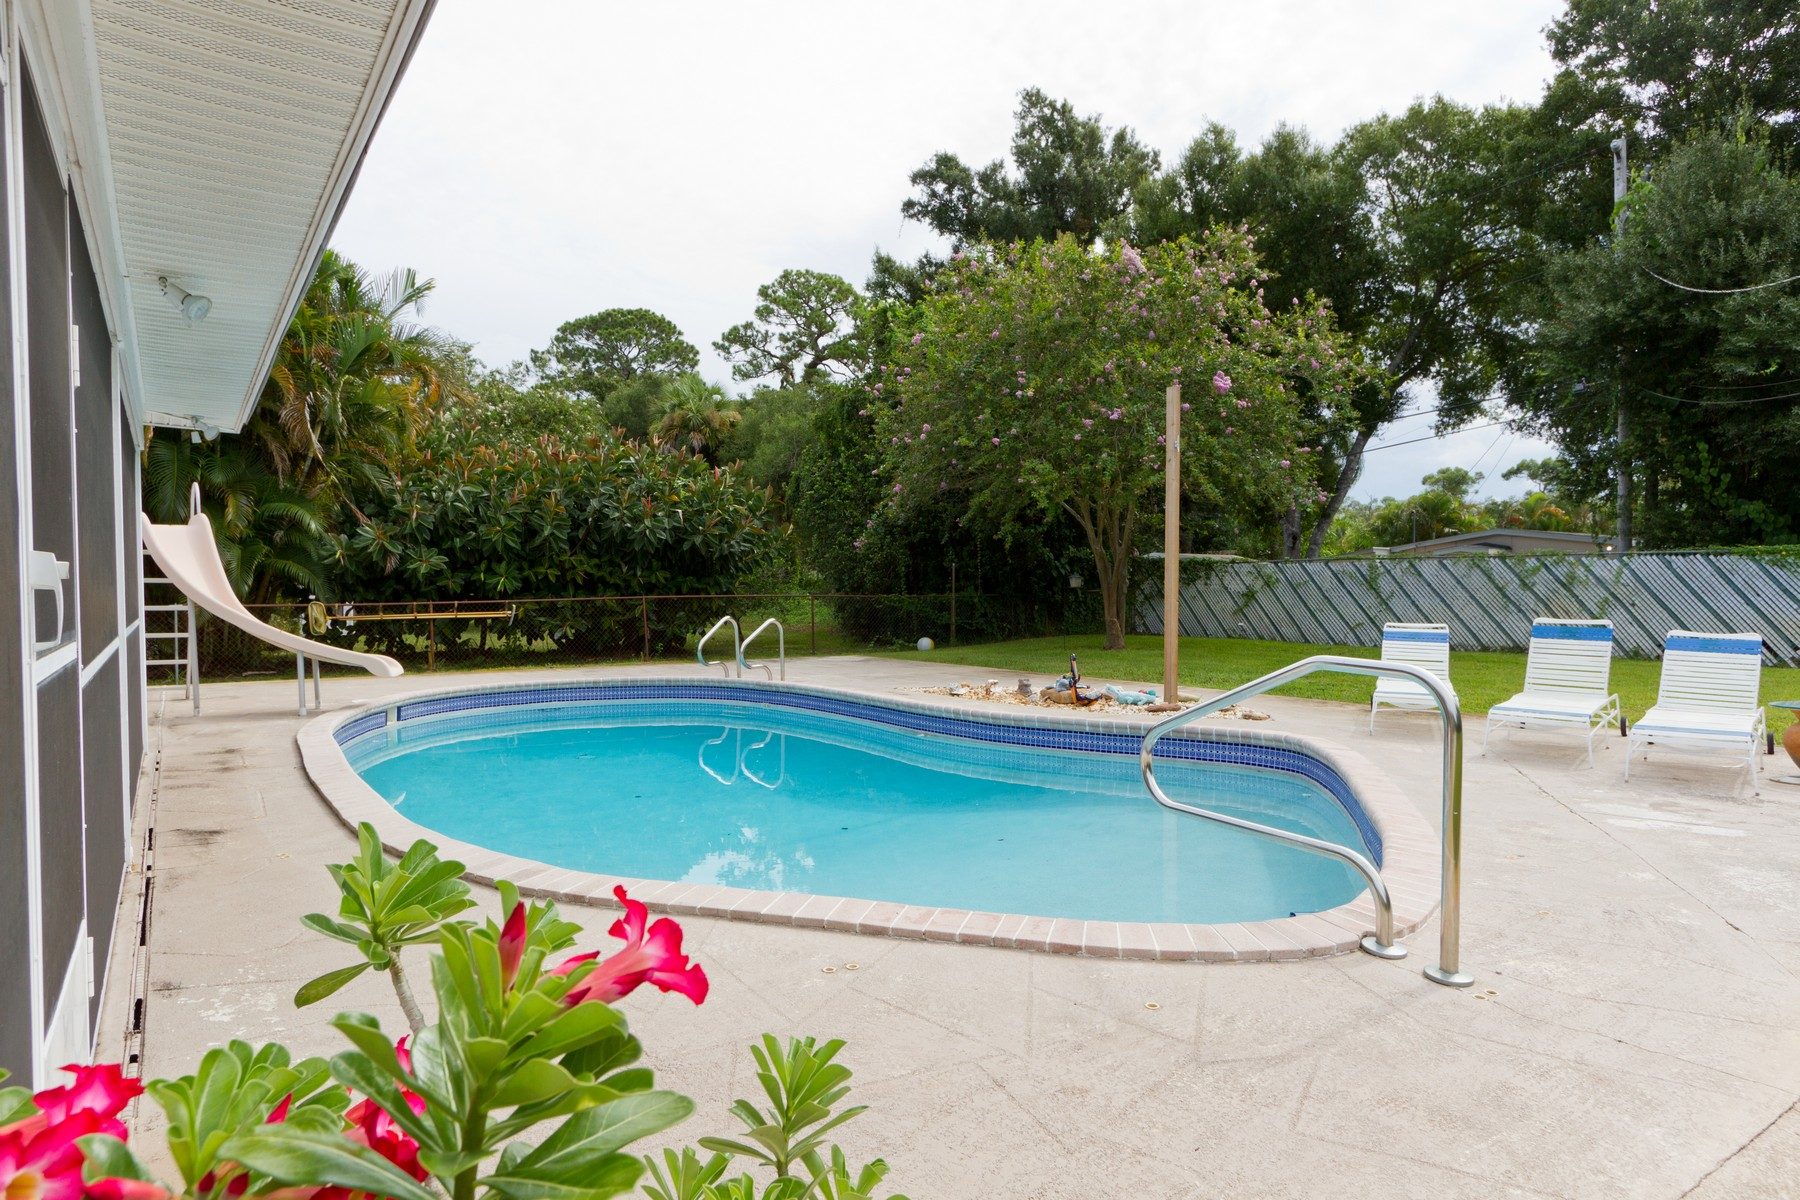 Property for Sale at Florida Charm 1836 32nd Avenue Vero Beach, Florida 32960 United States